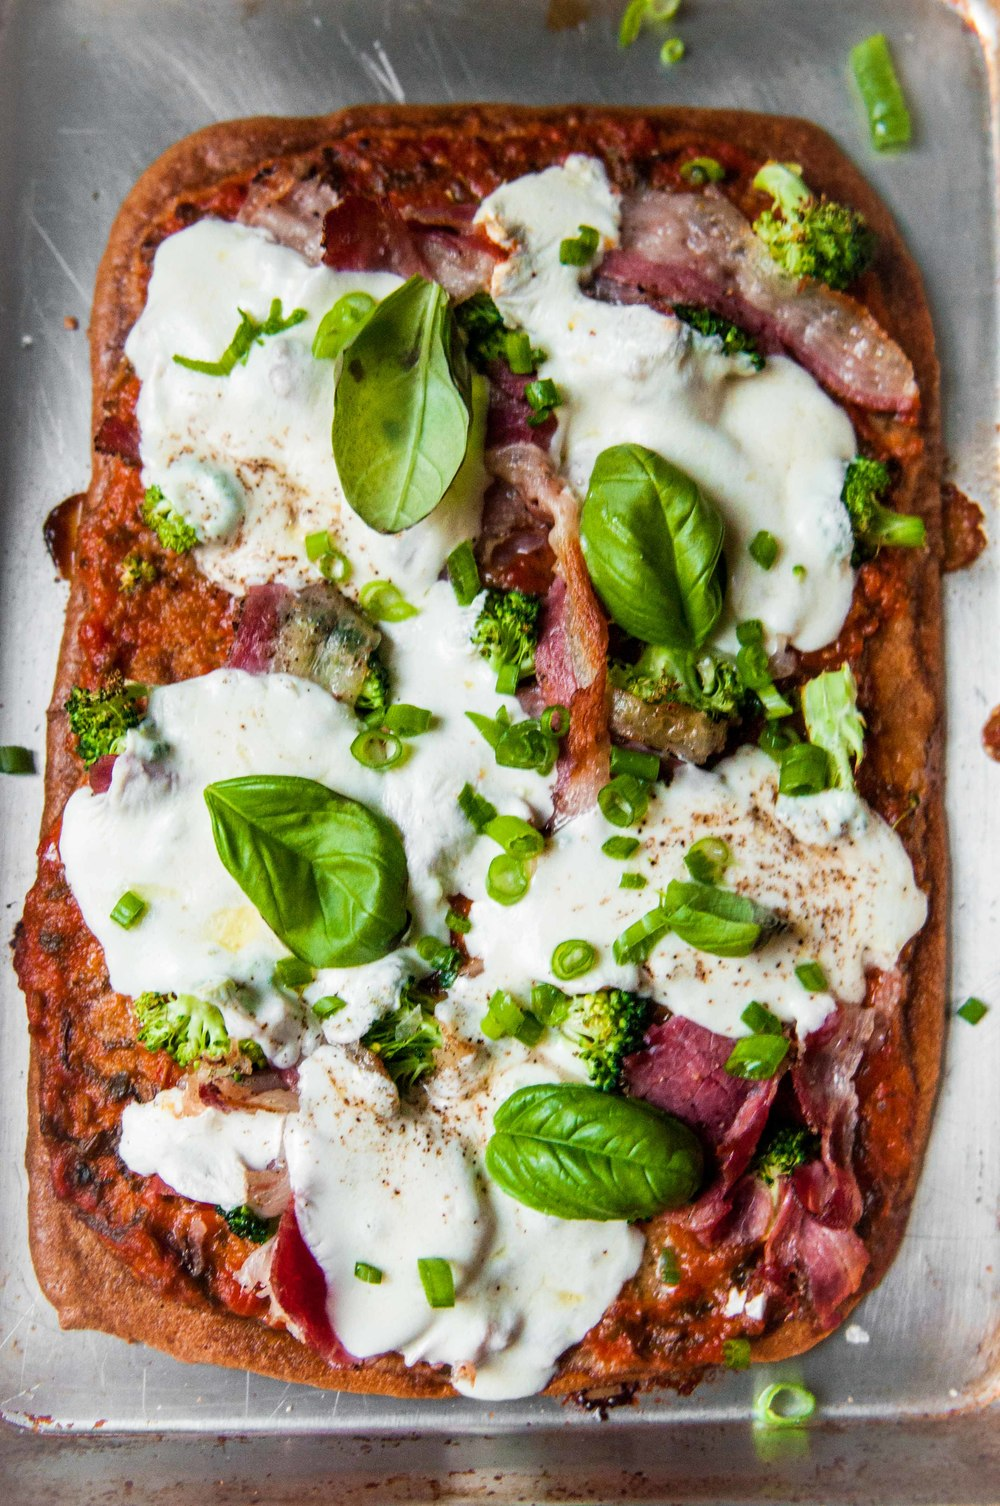 QUINOA PIZZA WITH pastrami and marinara